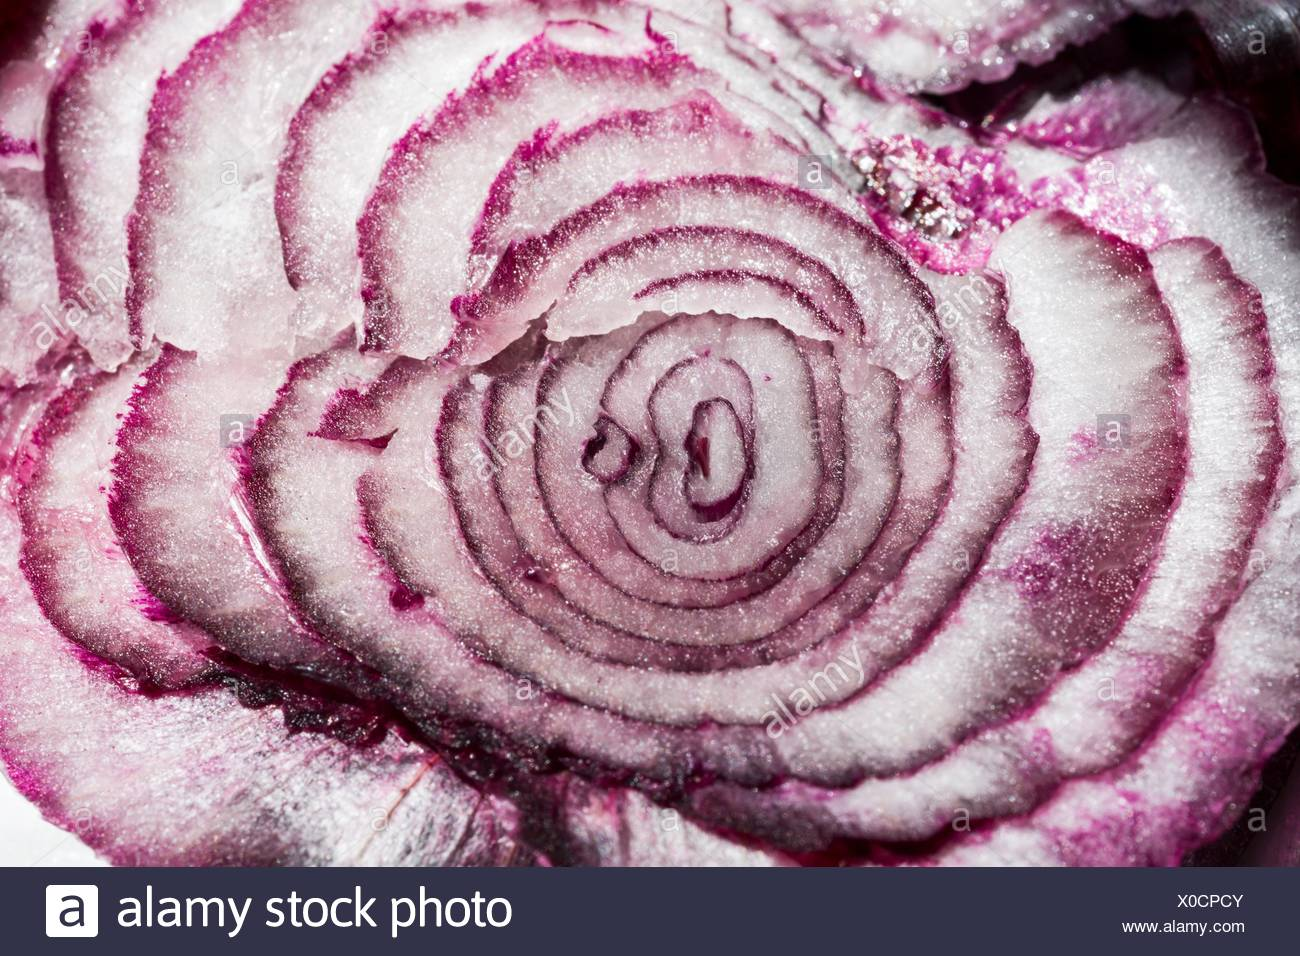 Cross section of a red onion. - Stock Image